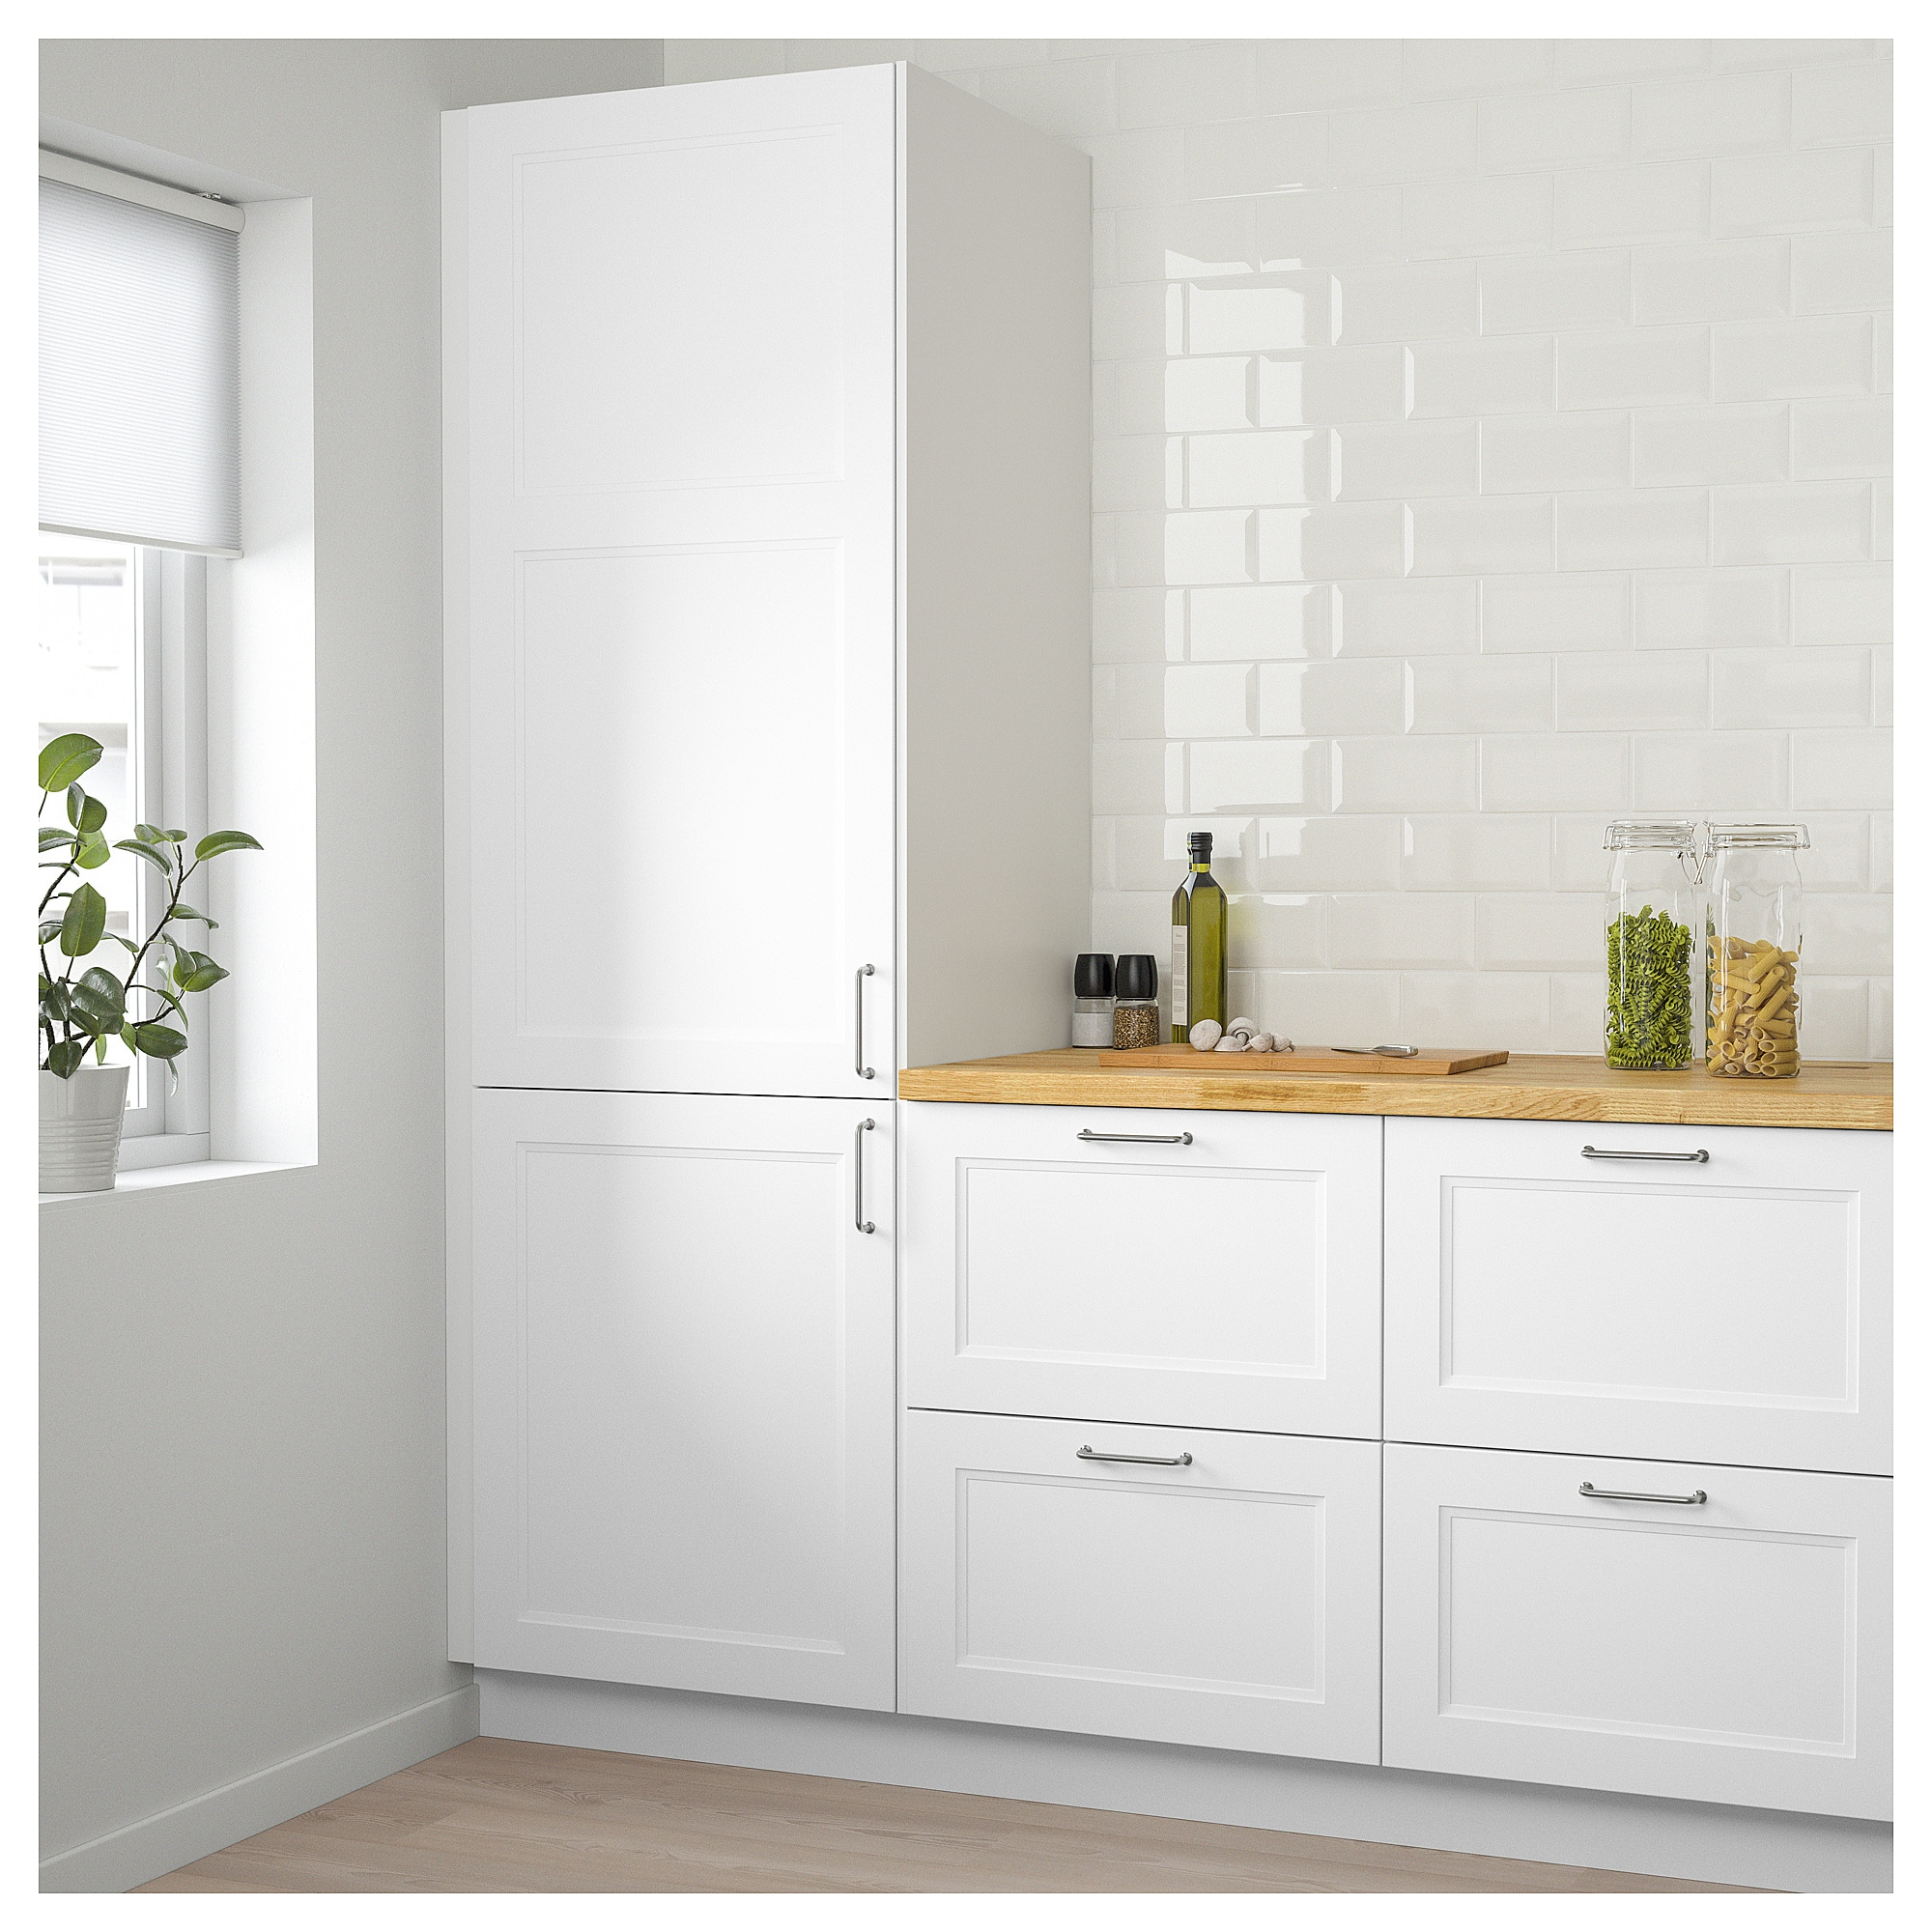 IKEA AXSTAD Door matt white Kitchen design, Ikea